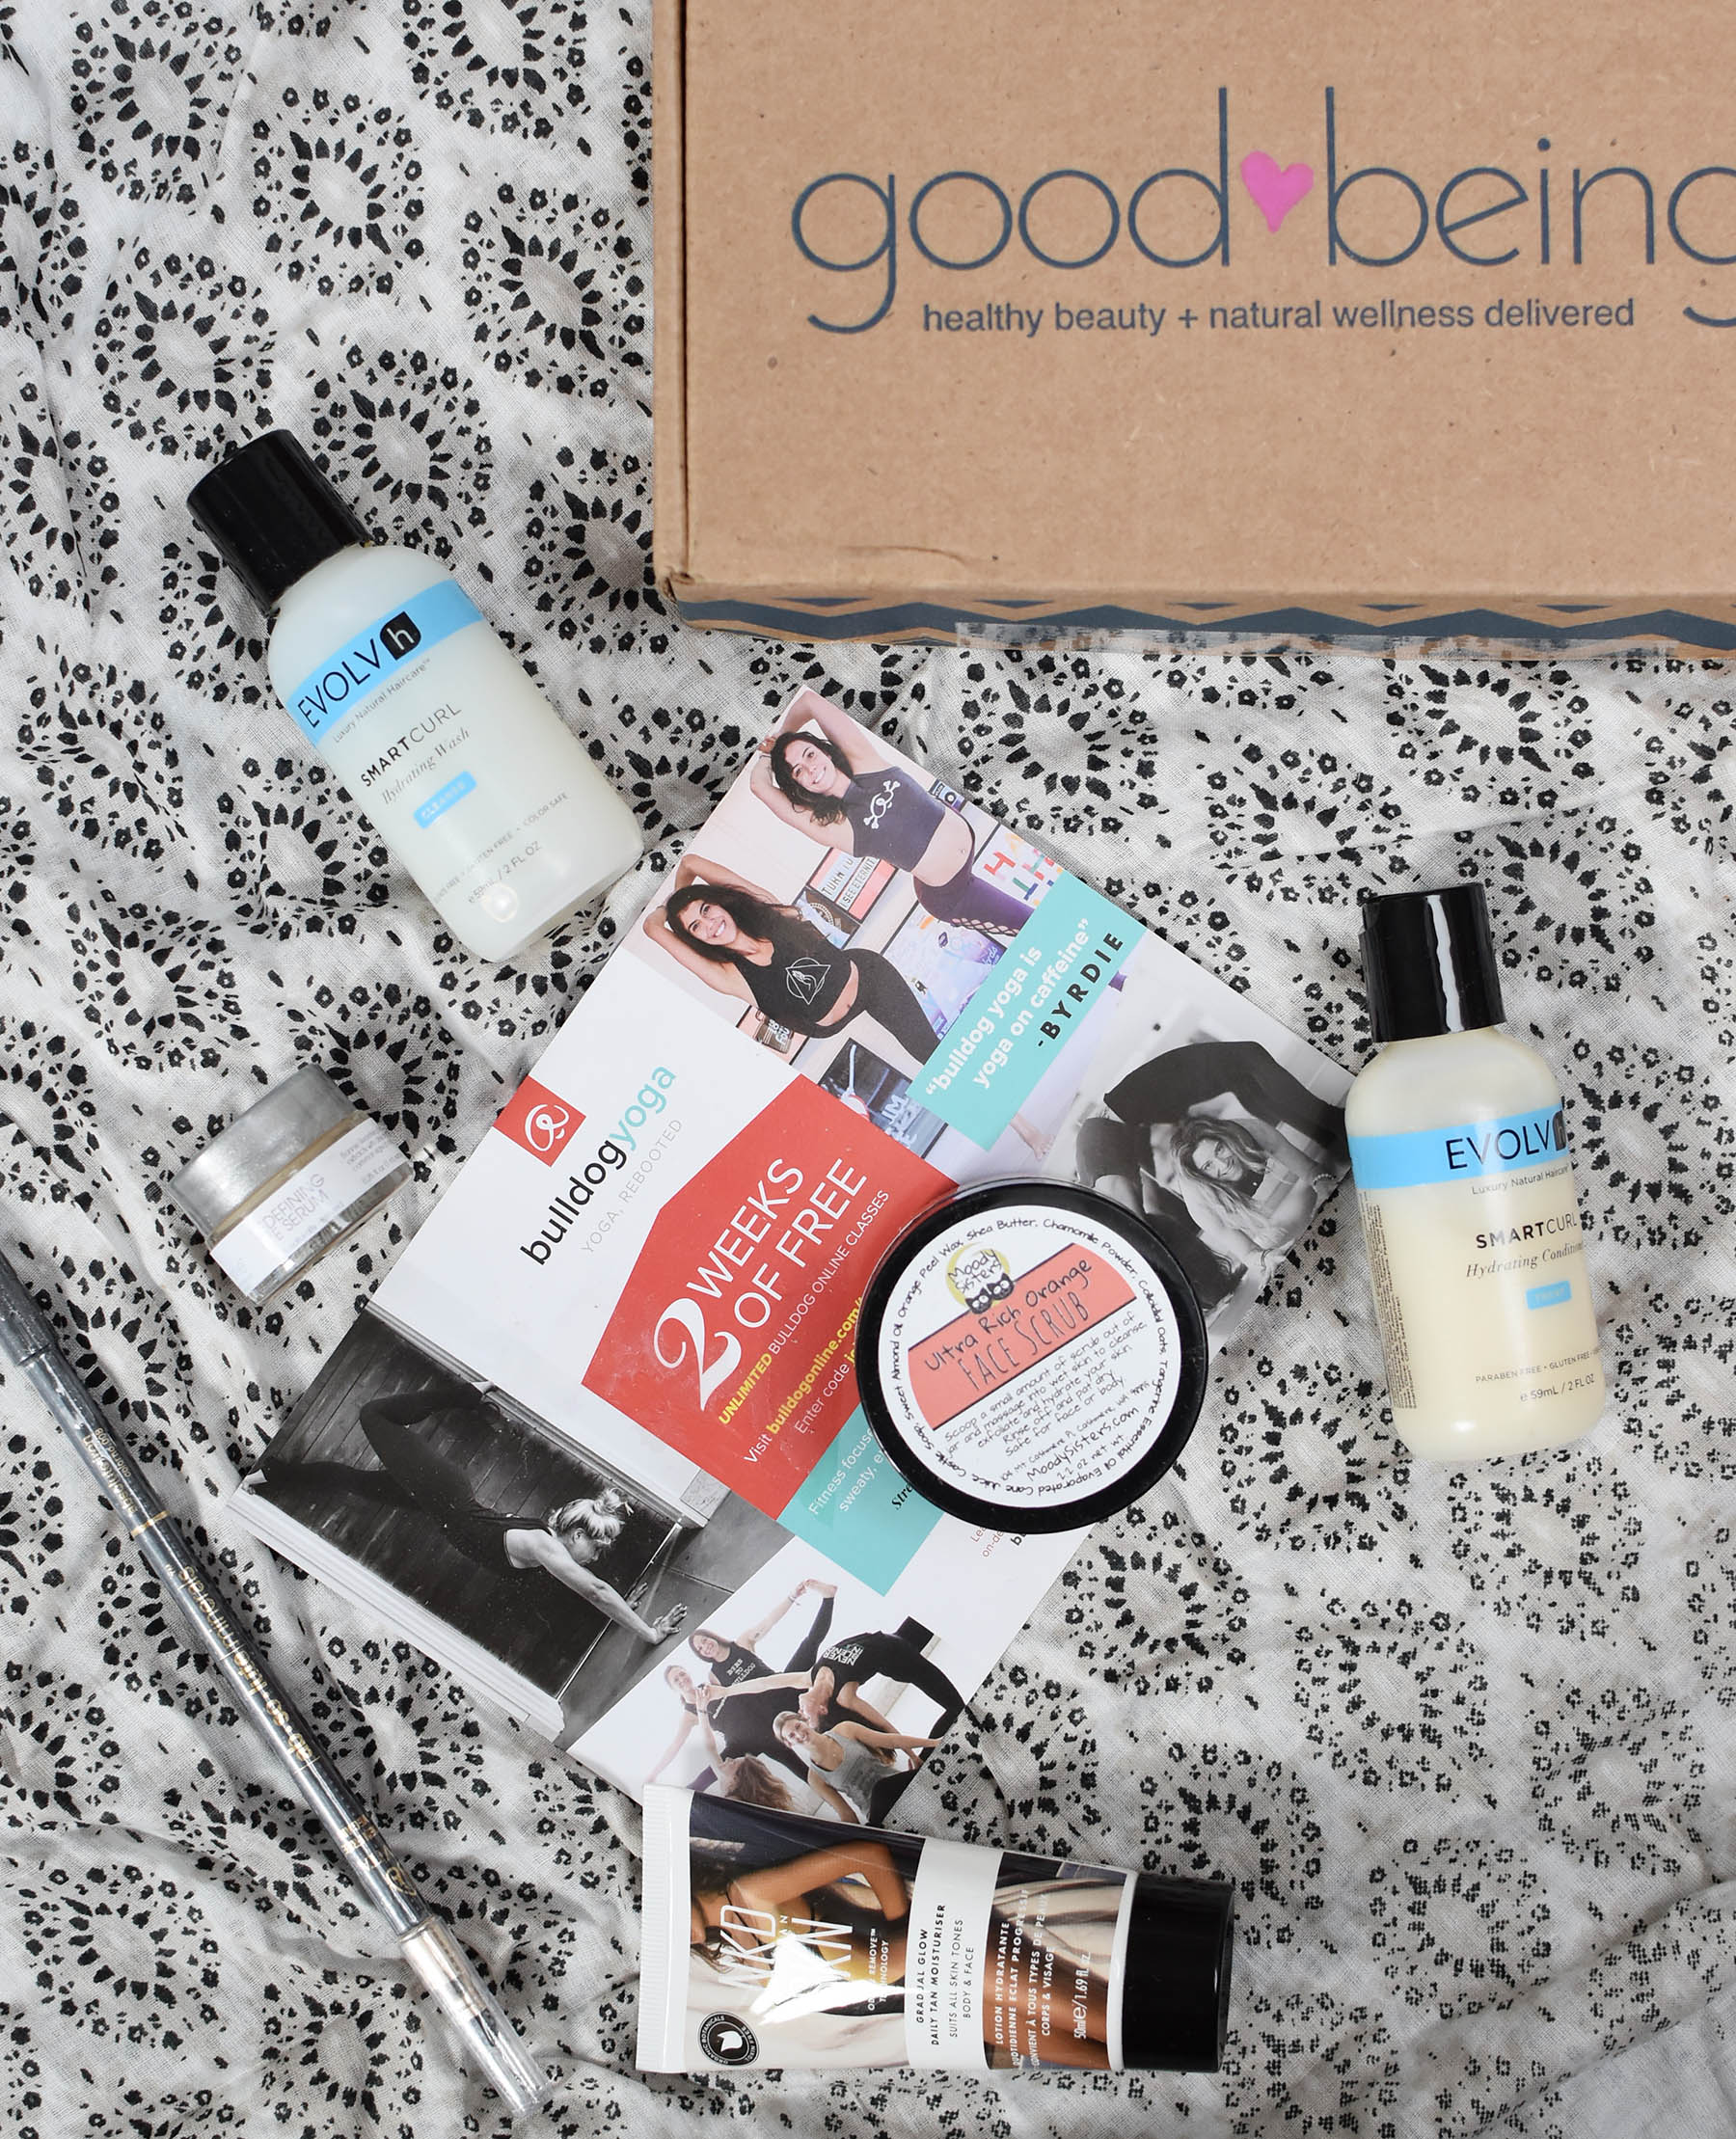 Goodbeing September 2018 review